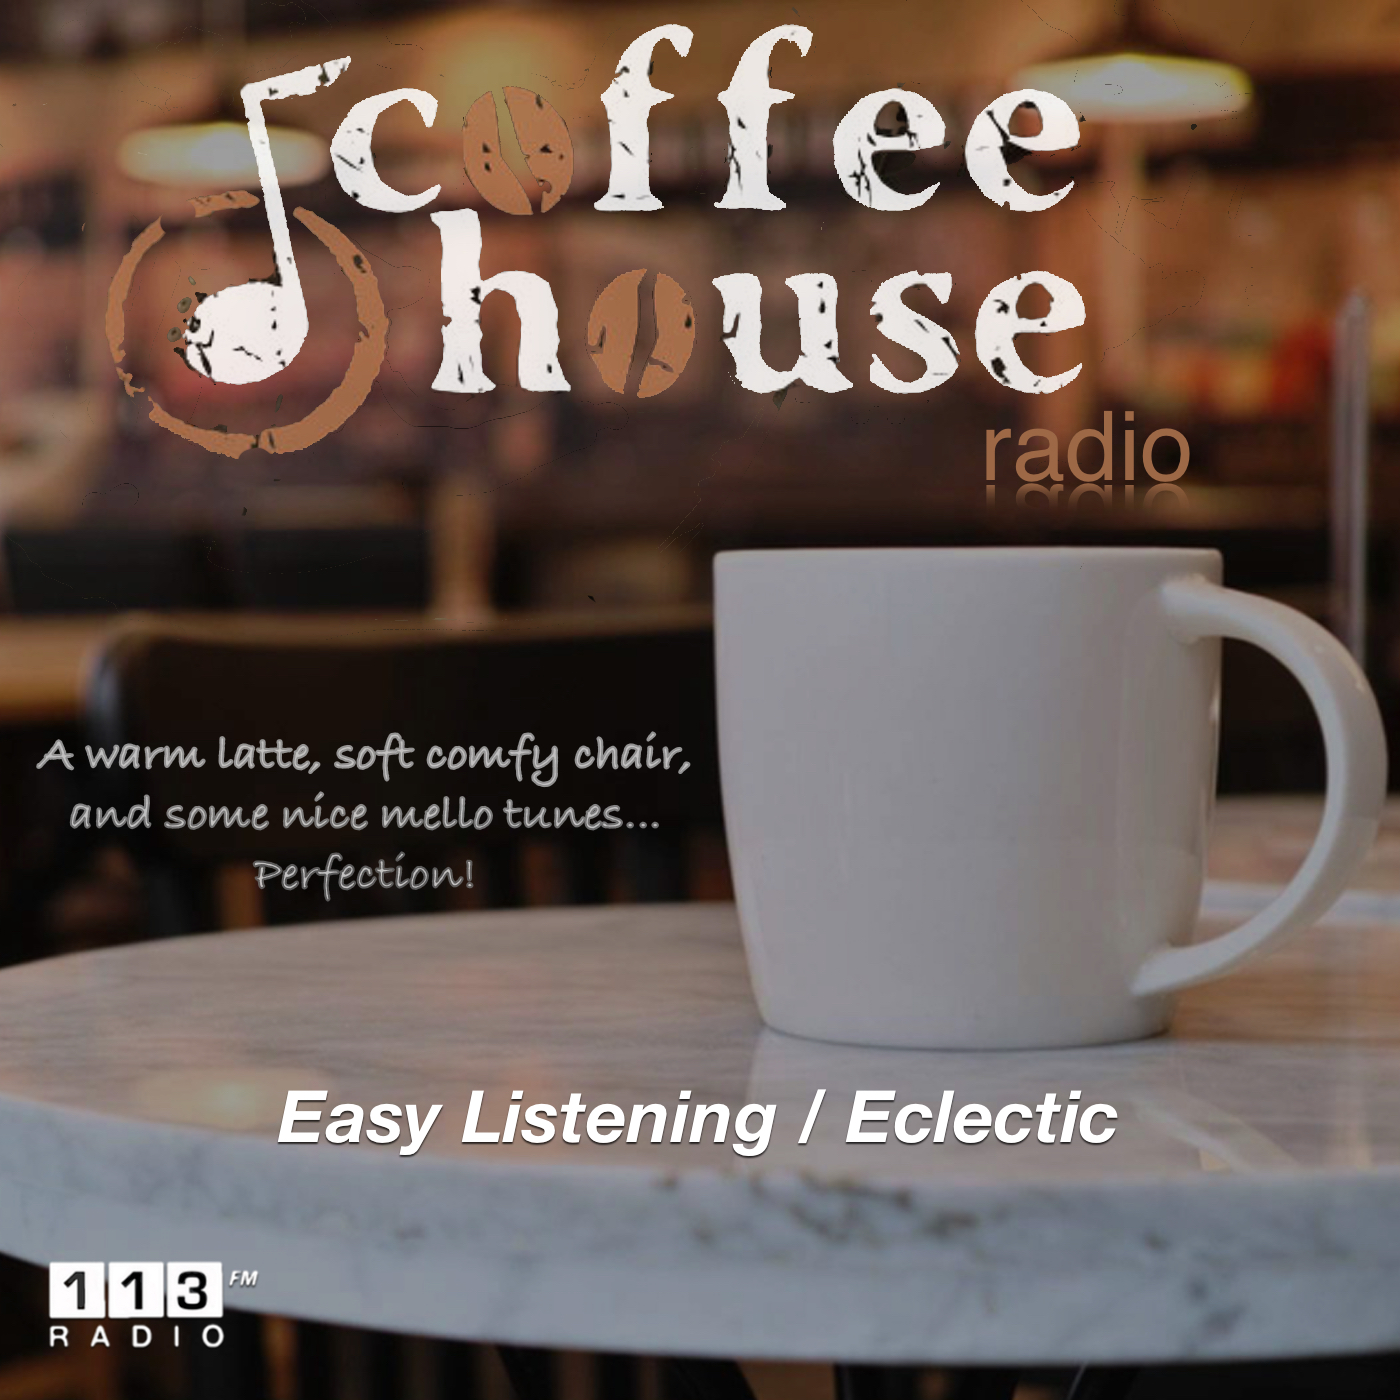 113.fm The Coffee House